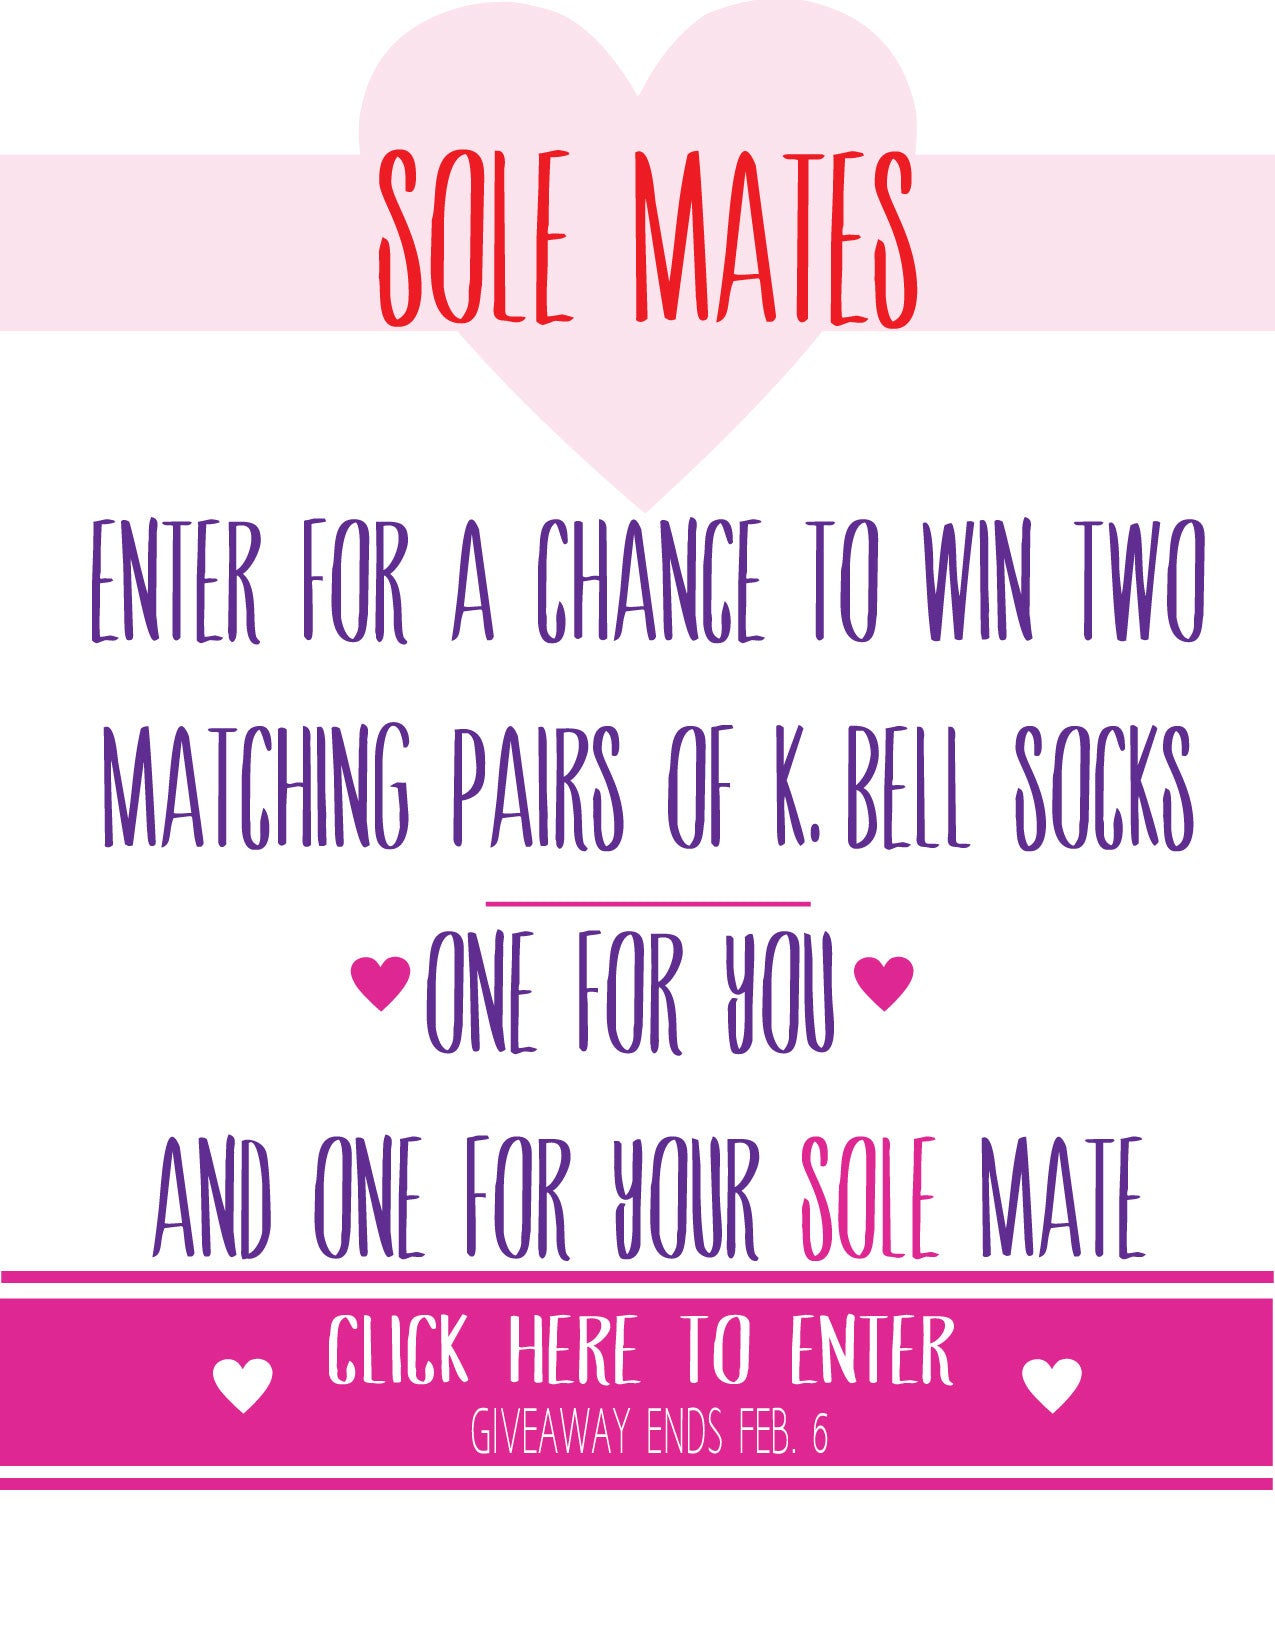 SOLE-MATES-NEWSLETTER